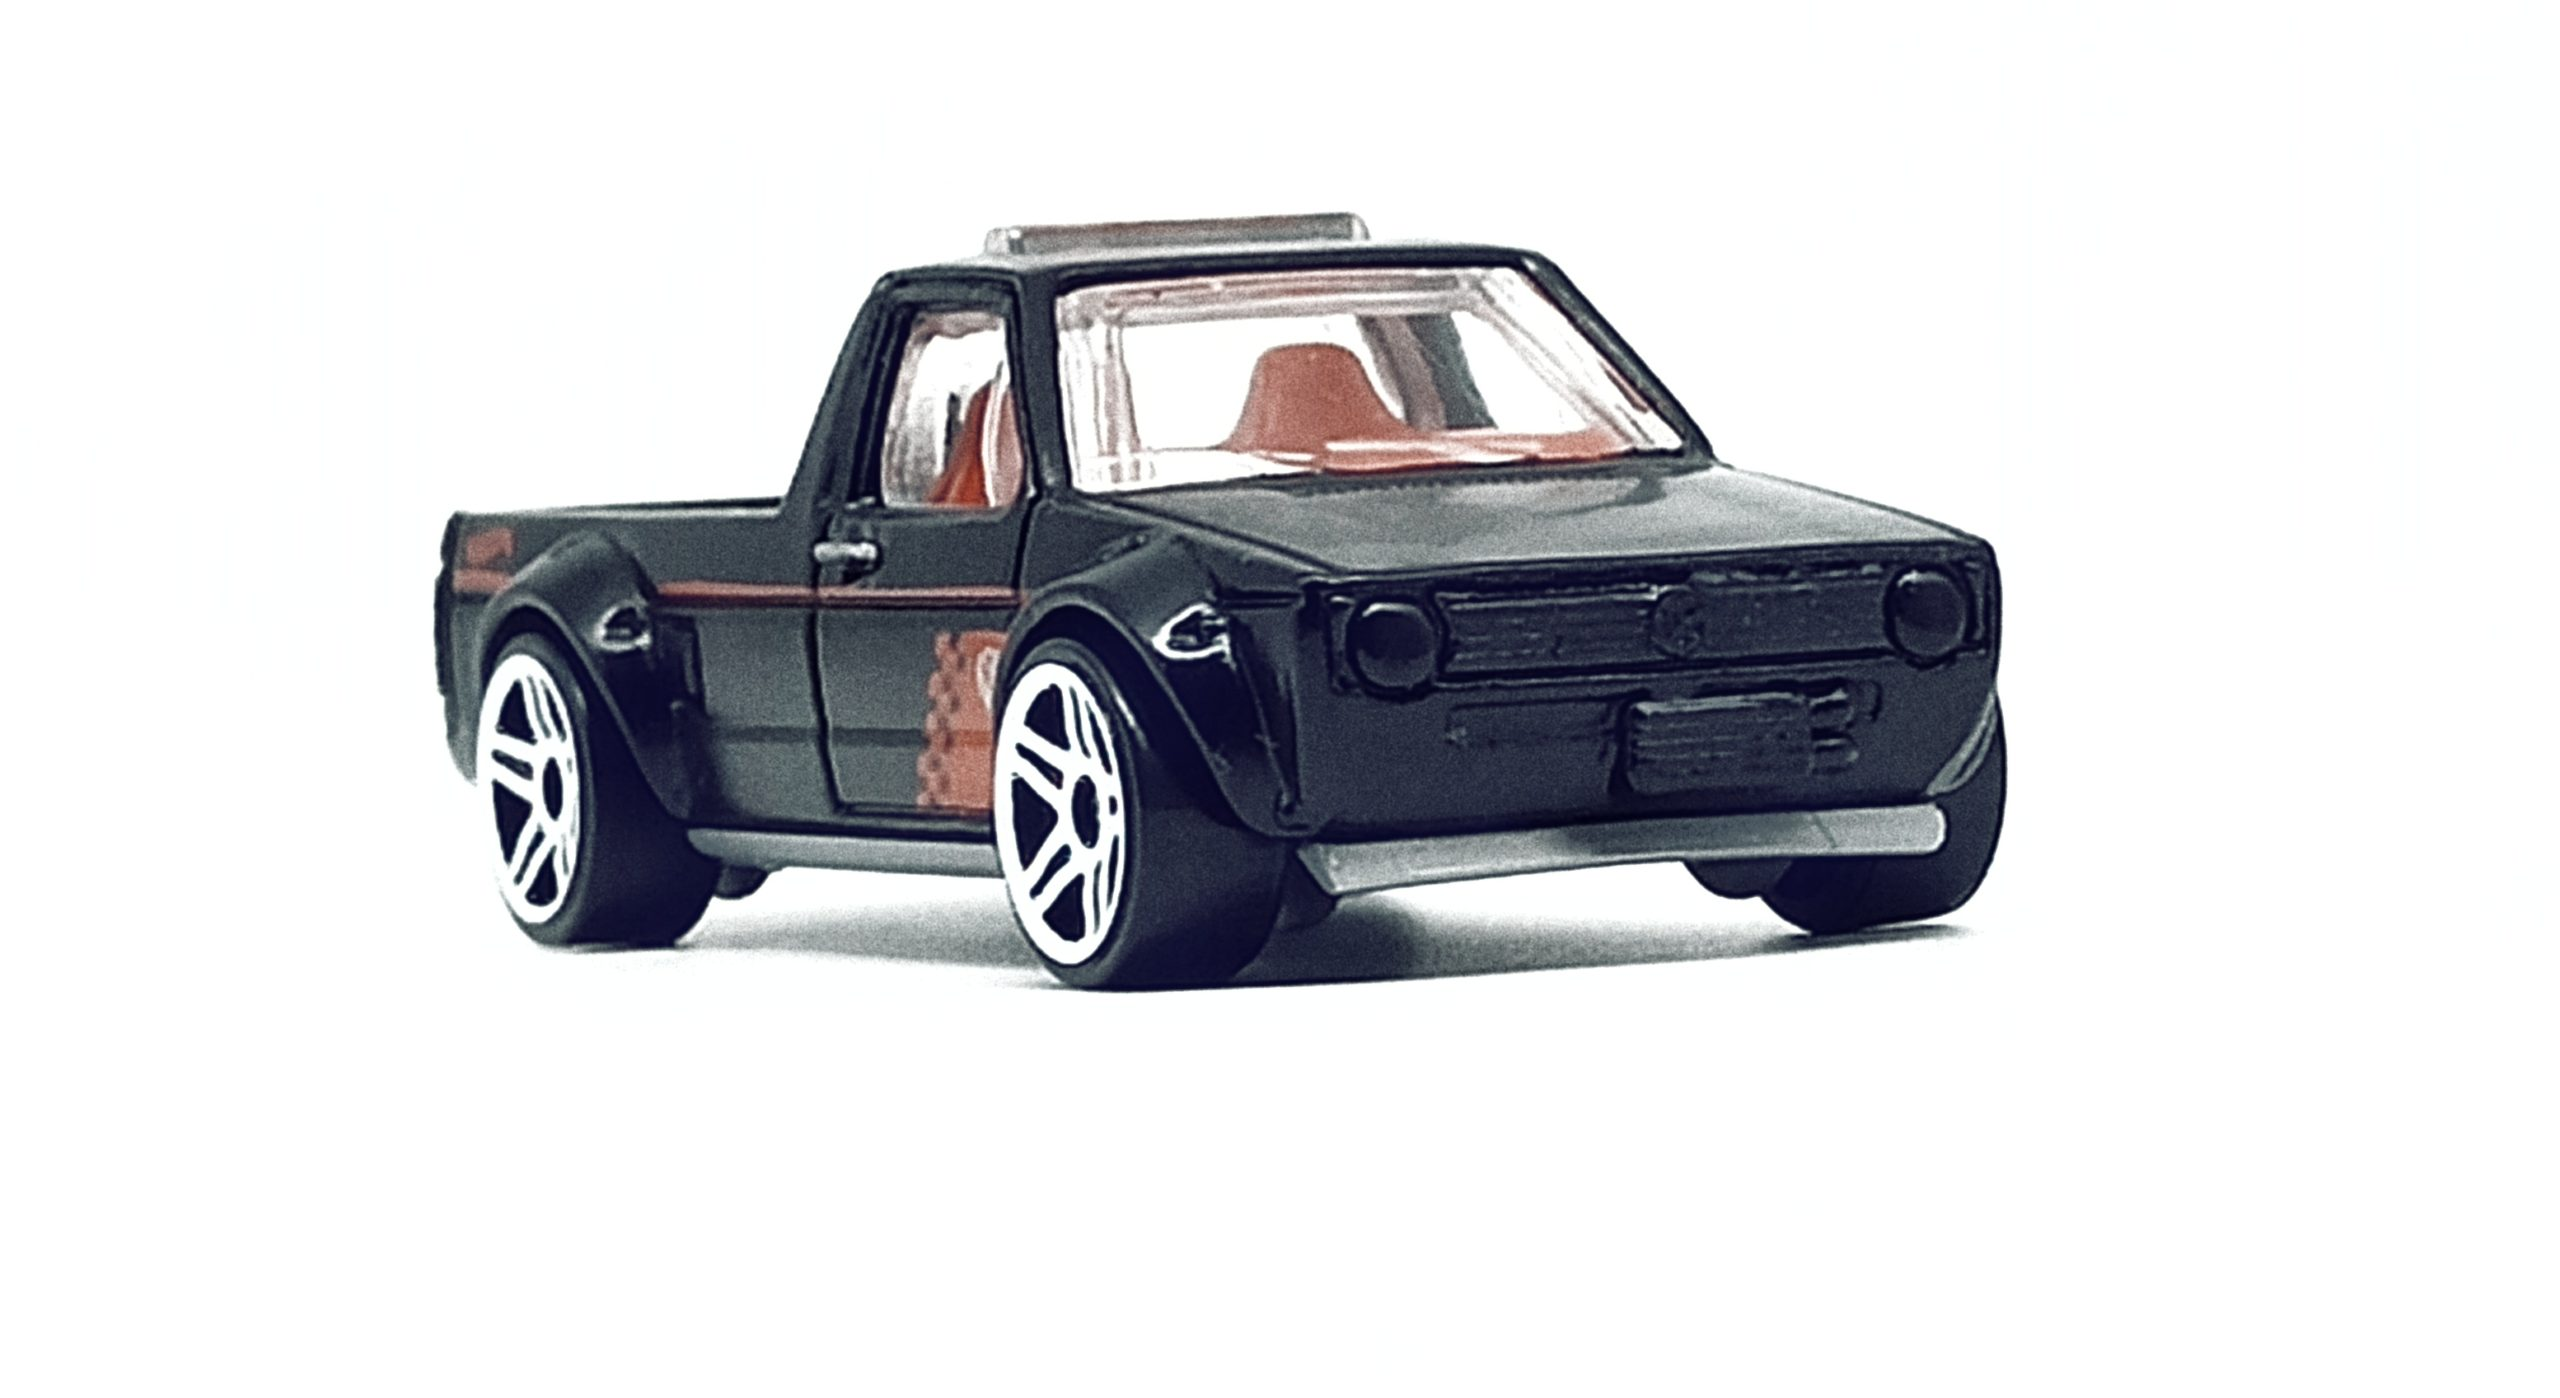 Hot Wheels Volkswagen Caddy (FYG73) 2019 (177/250) Target Red Edition (12/12) VW black front angle